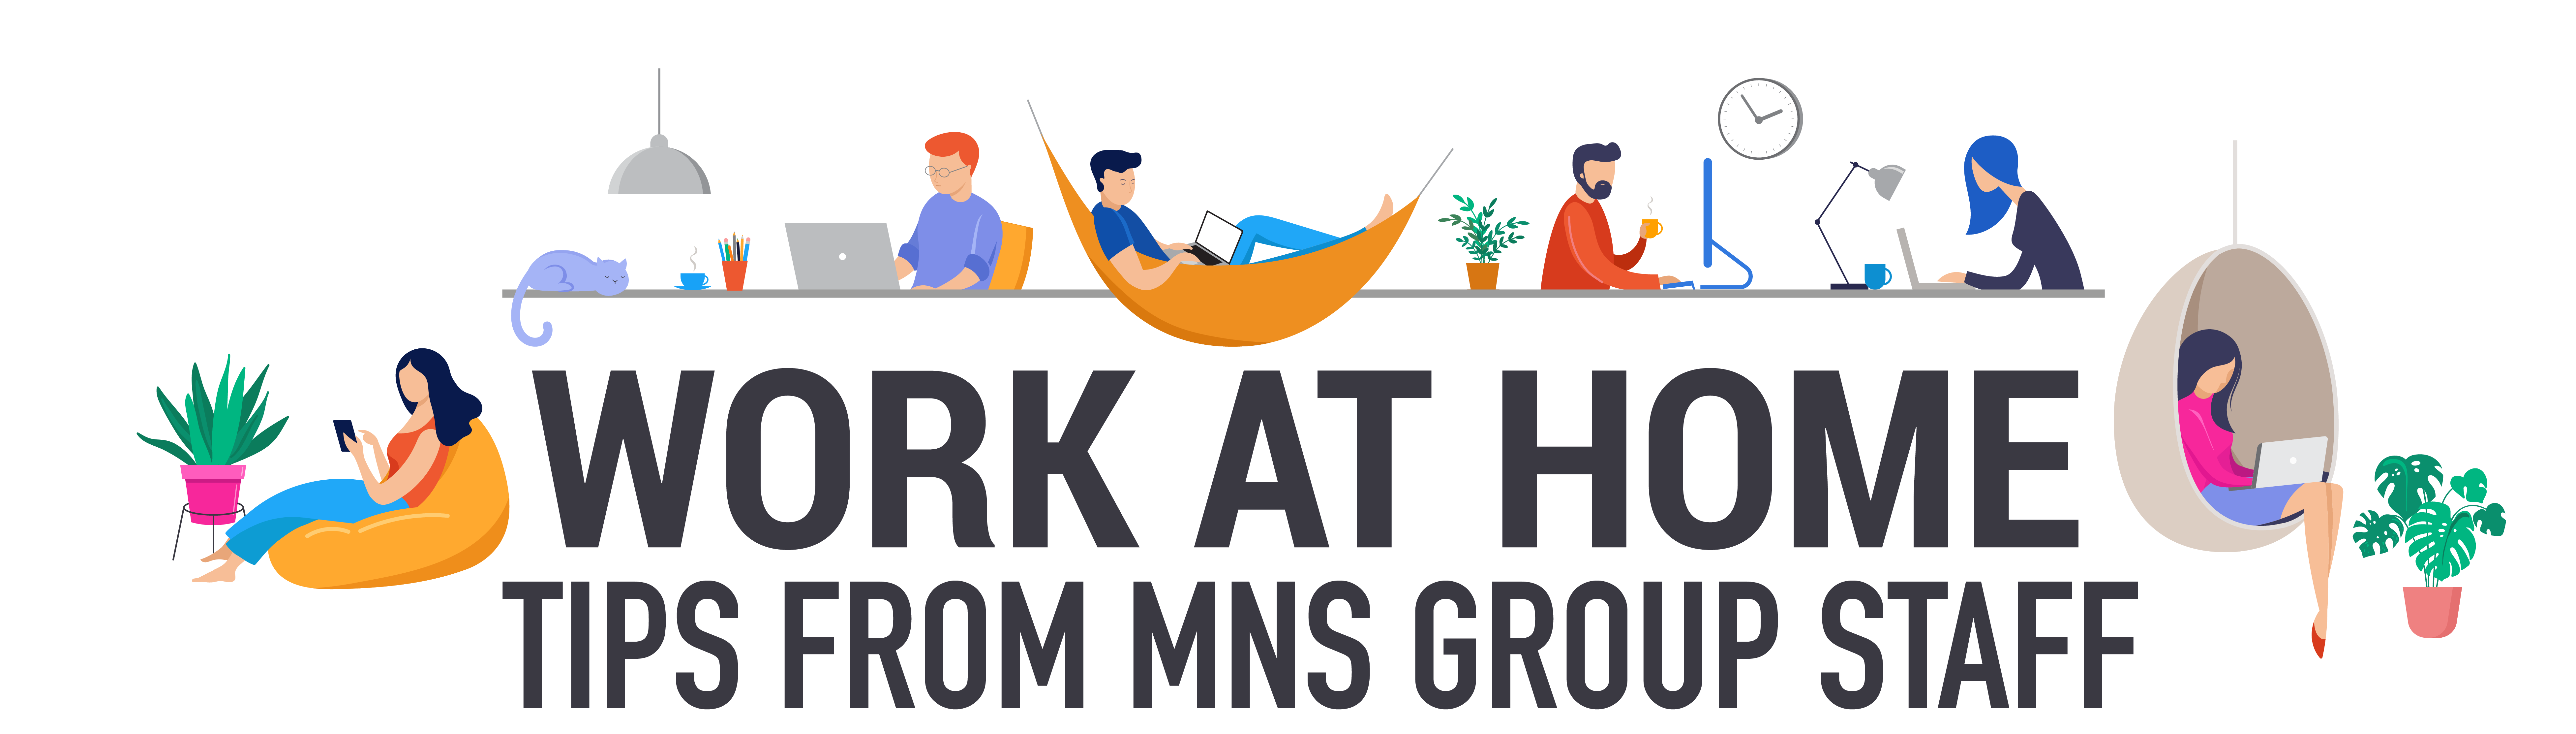 Top Work-At-Home Tips from MNS Group Staff